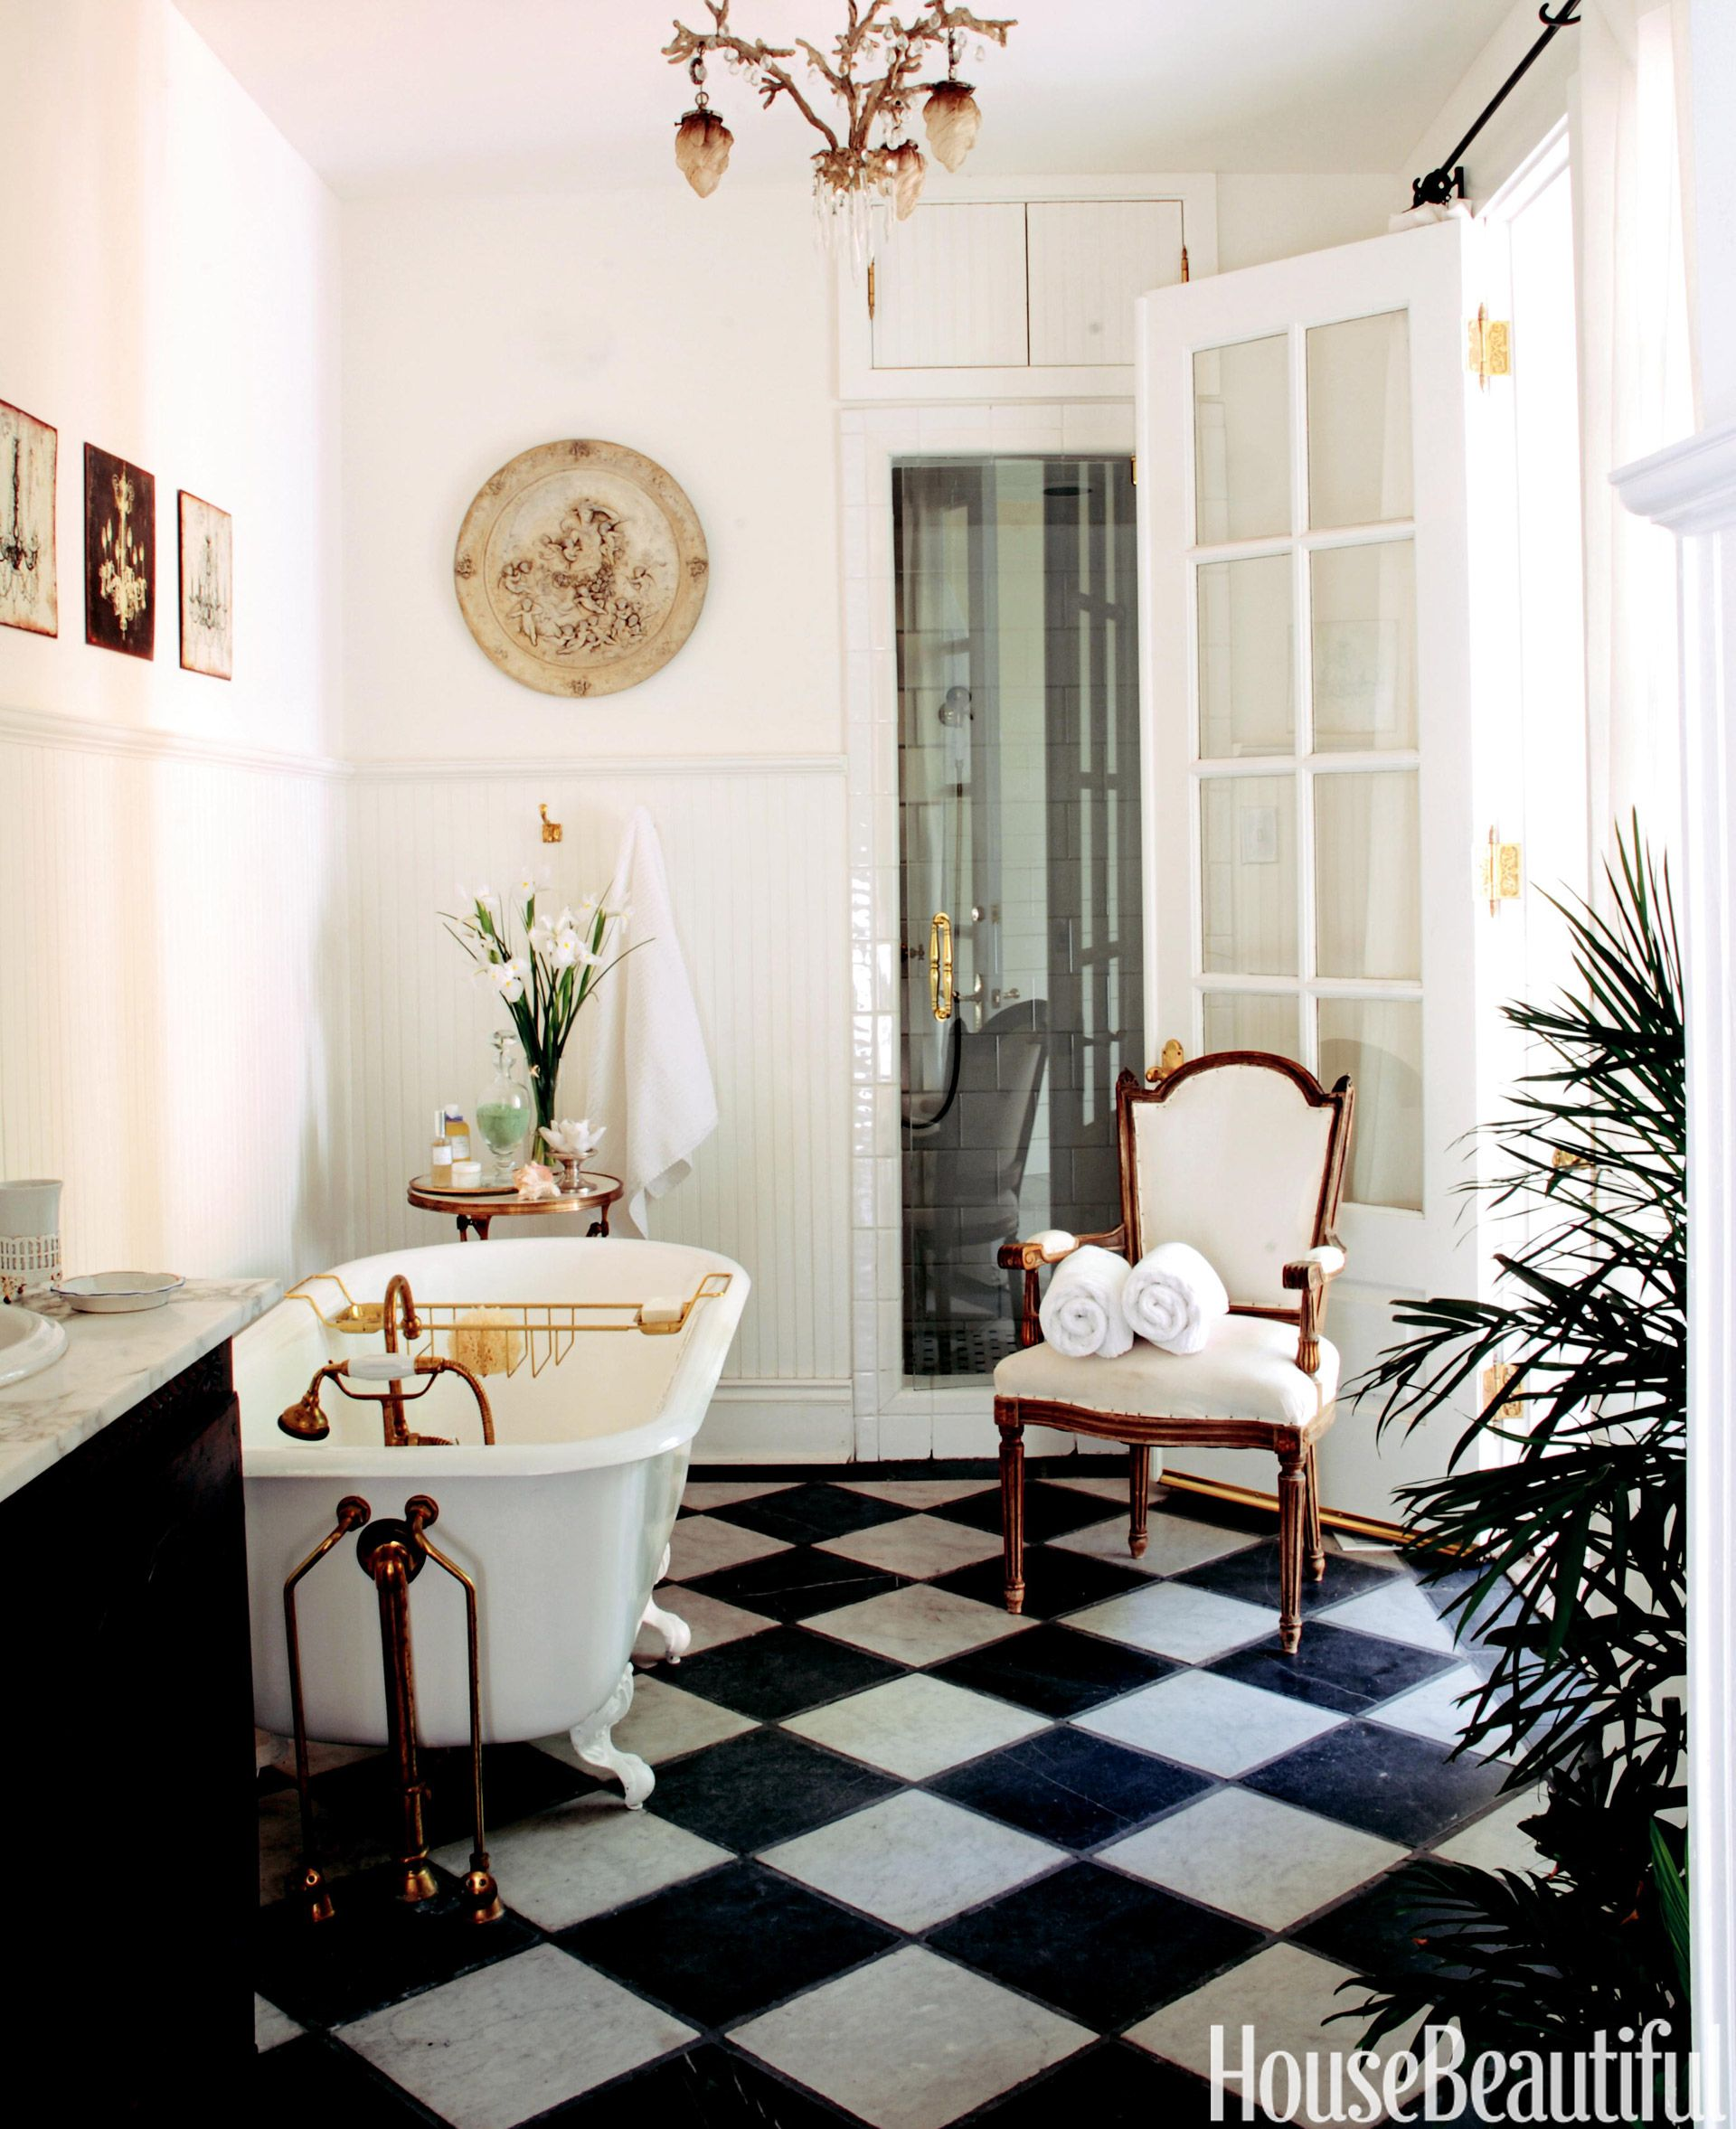 Top Pin Of The Day A French Inspired Bathroom